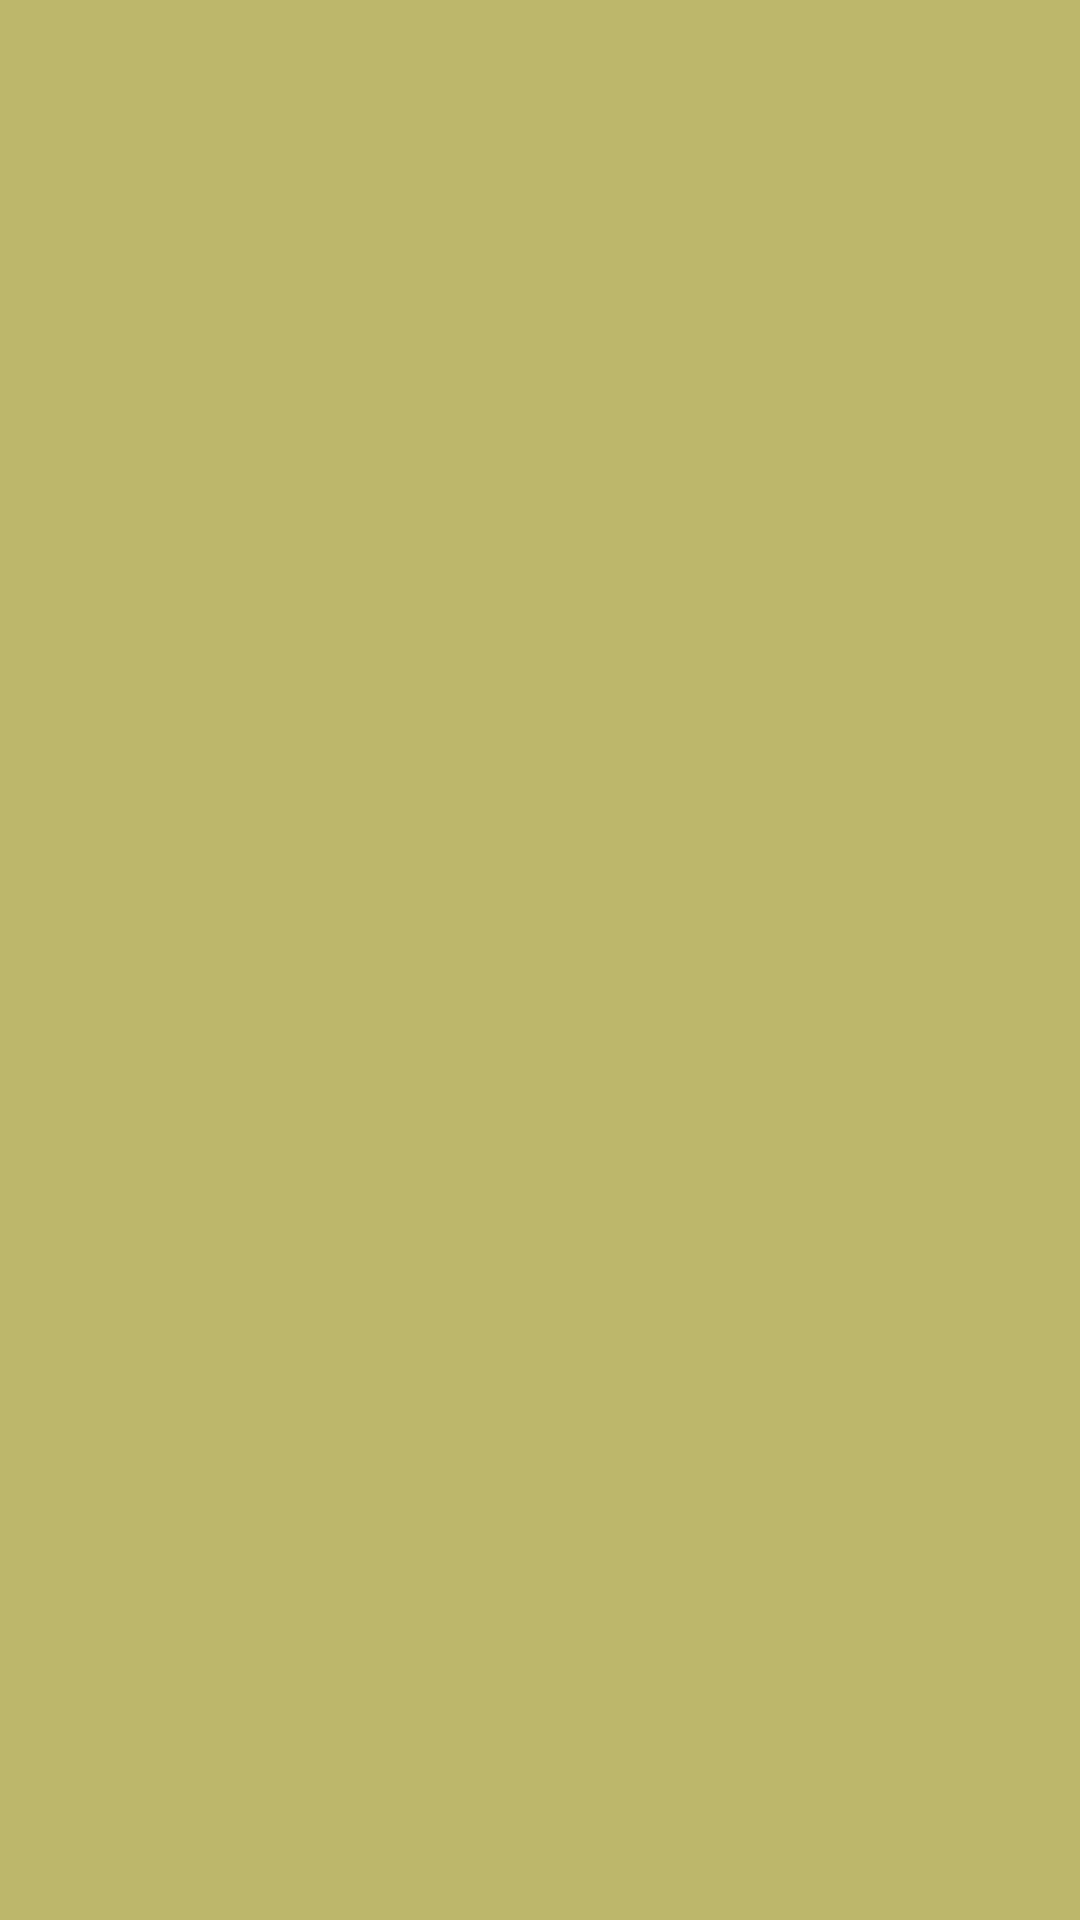 1080x1920 Dark Khaki Solid Color Background